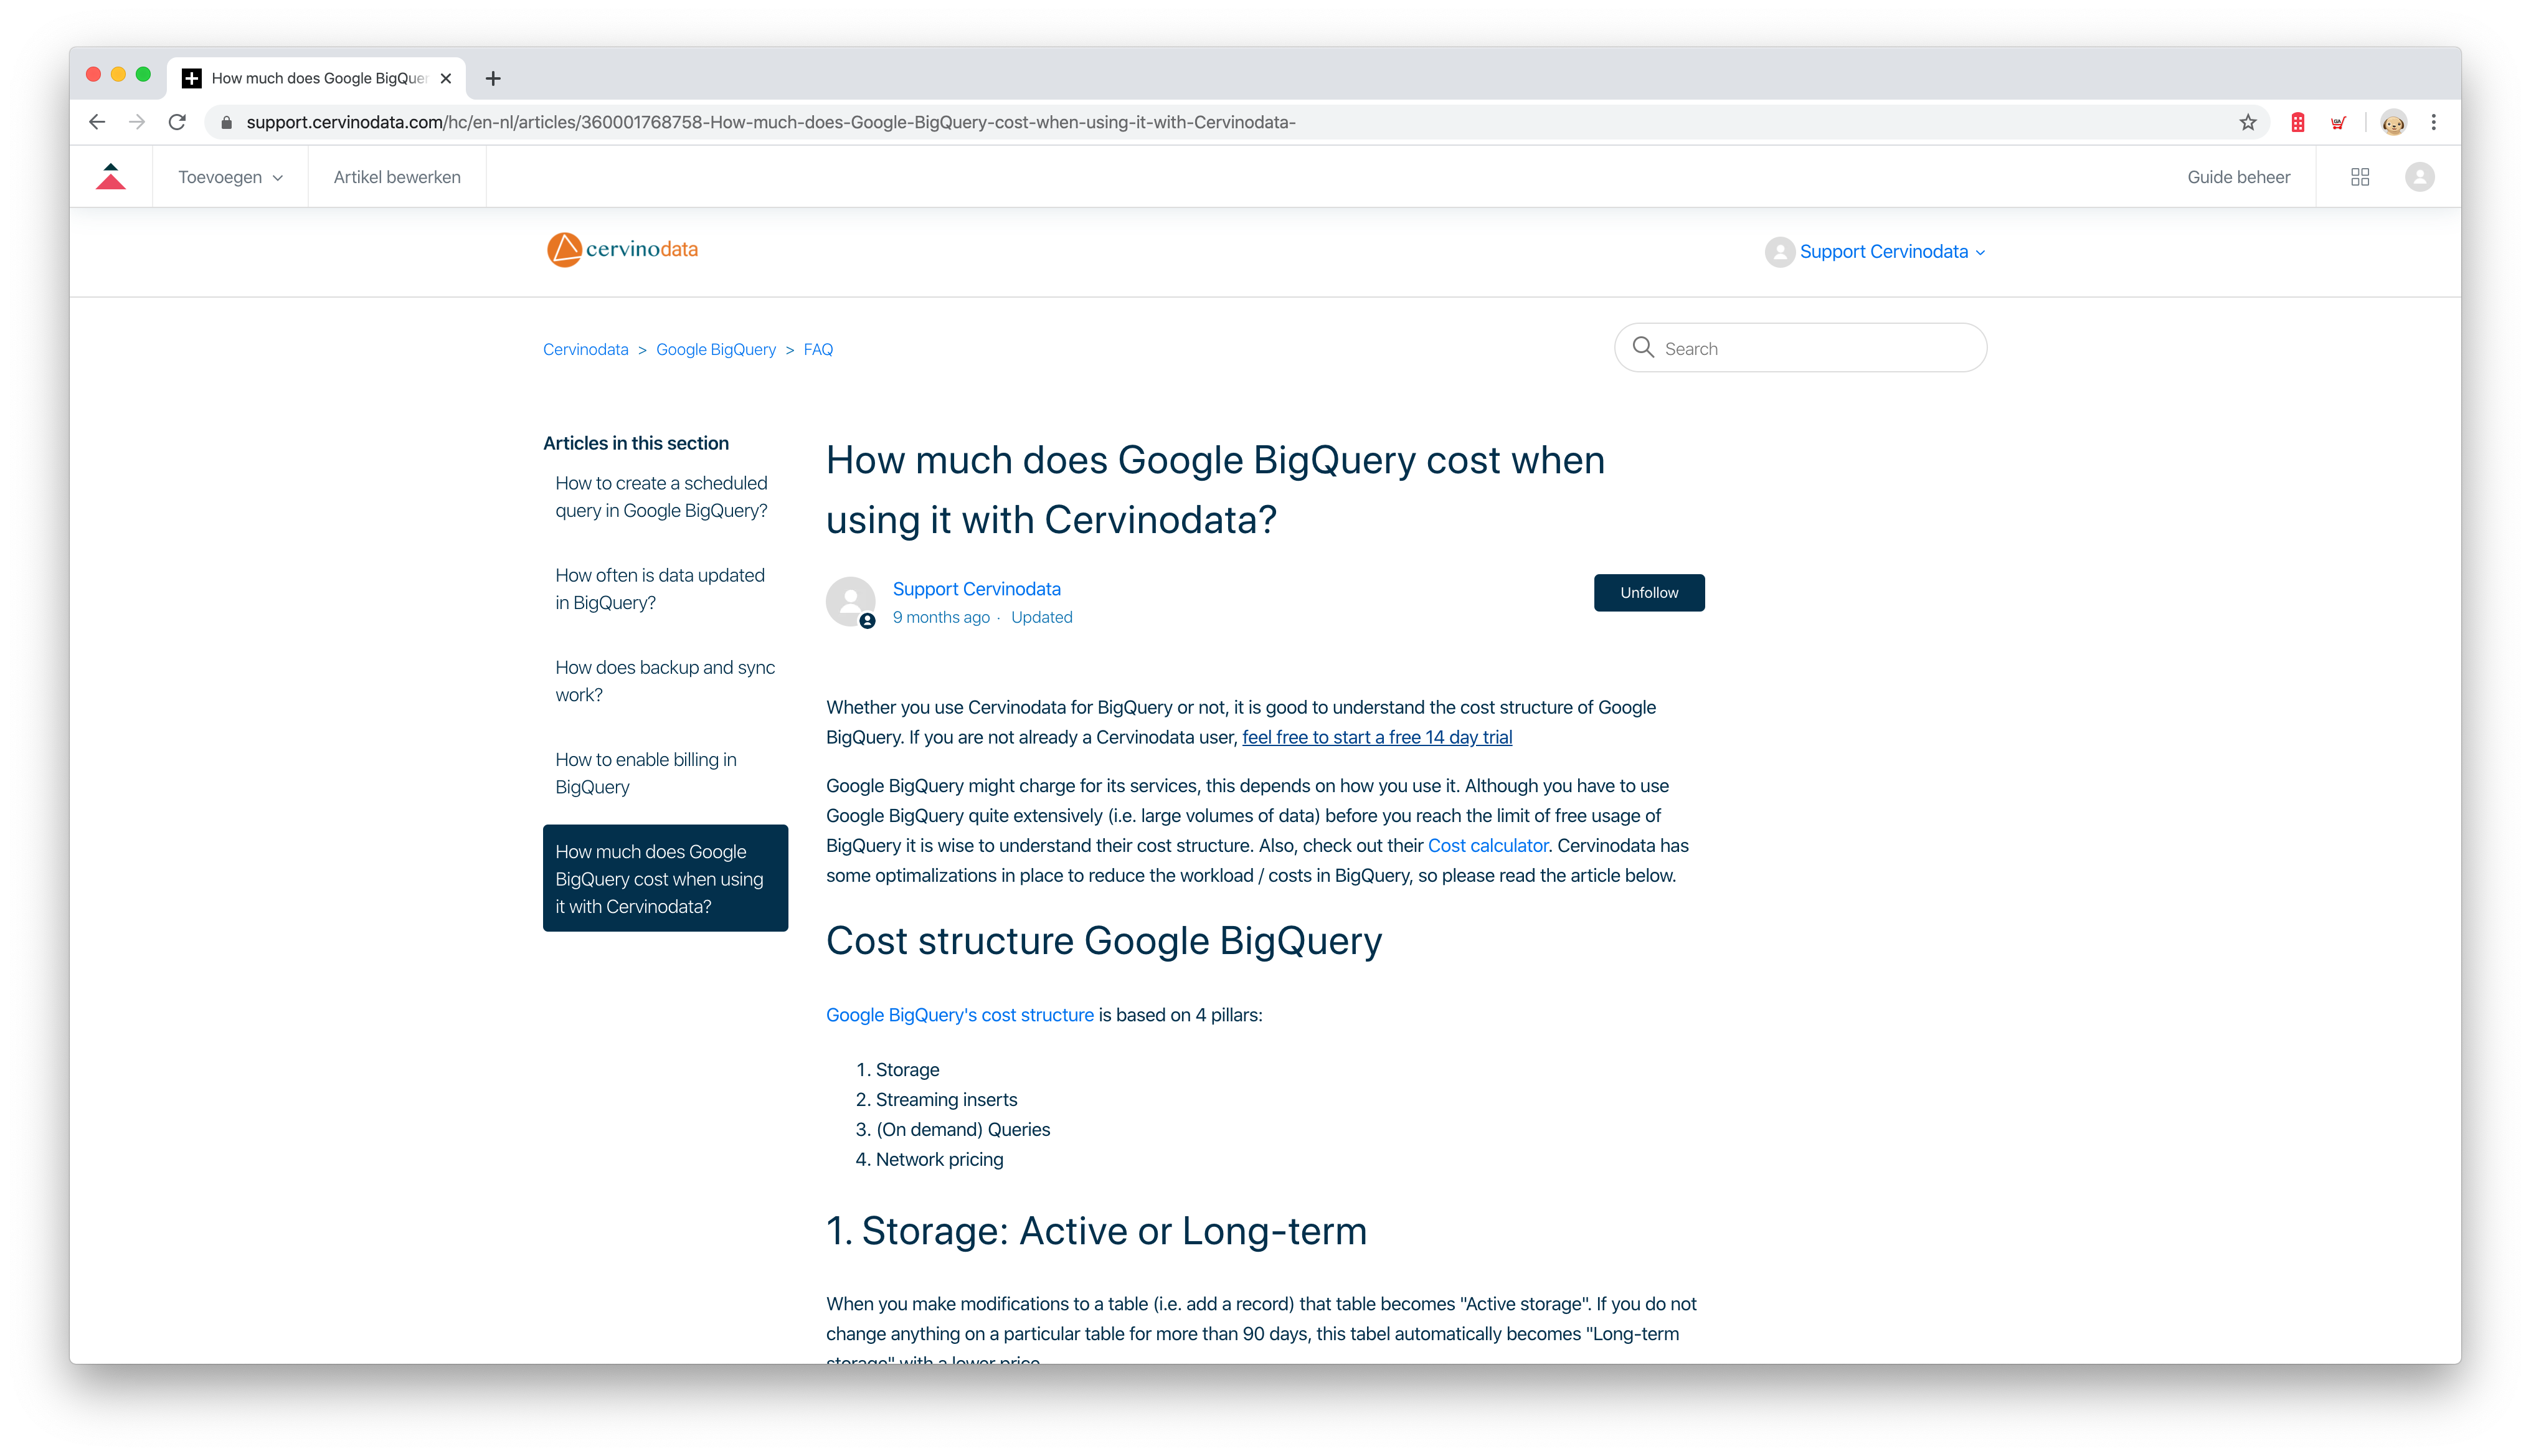 BigQuery cost structure explained